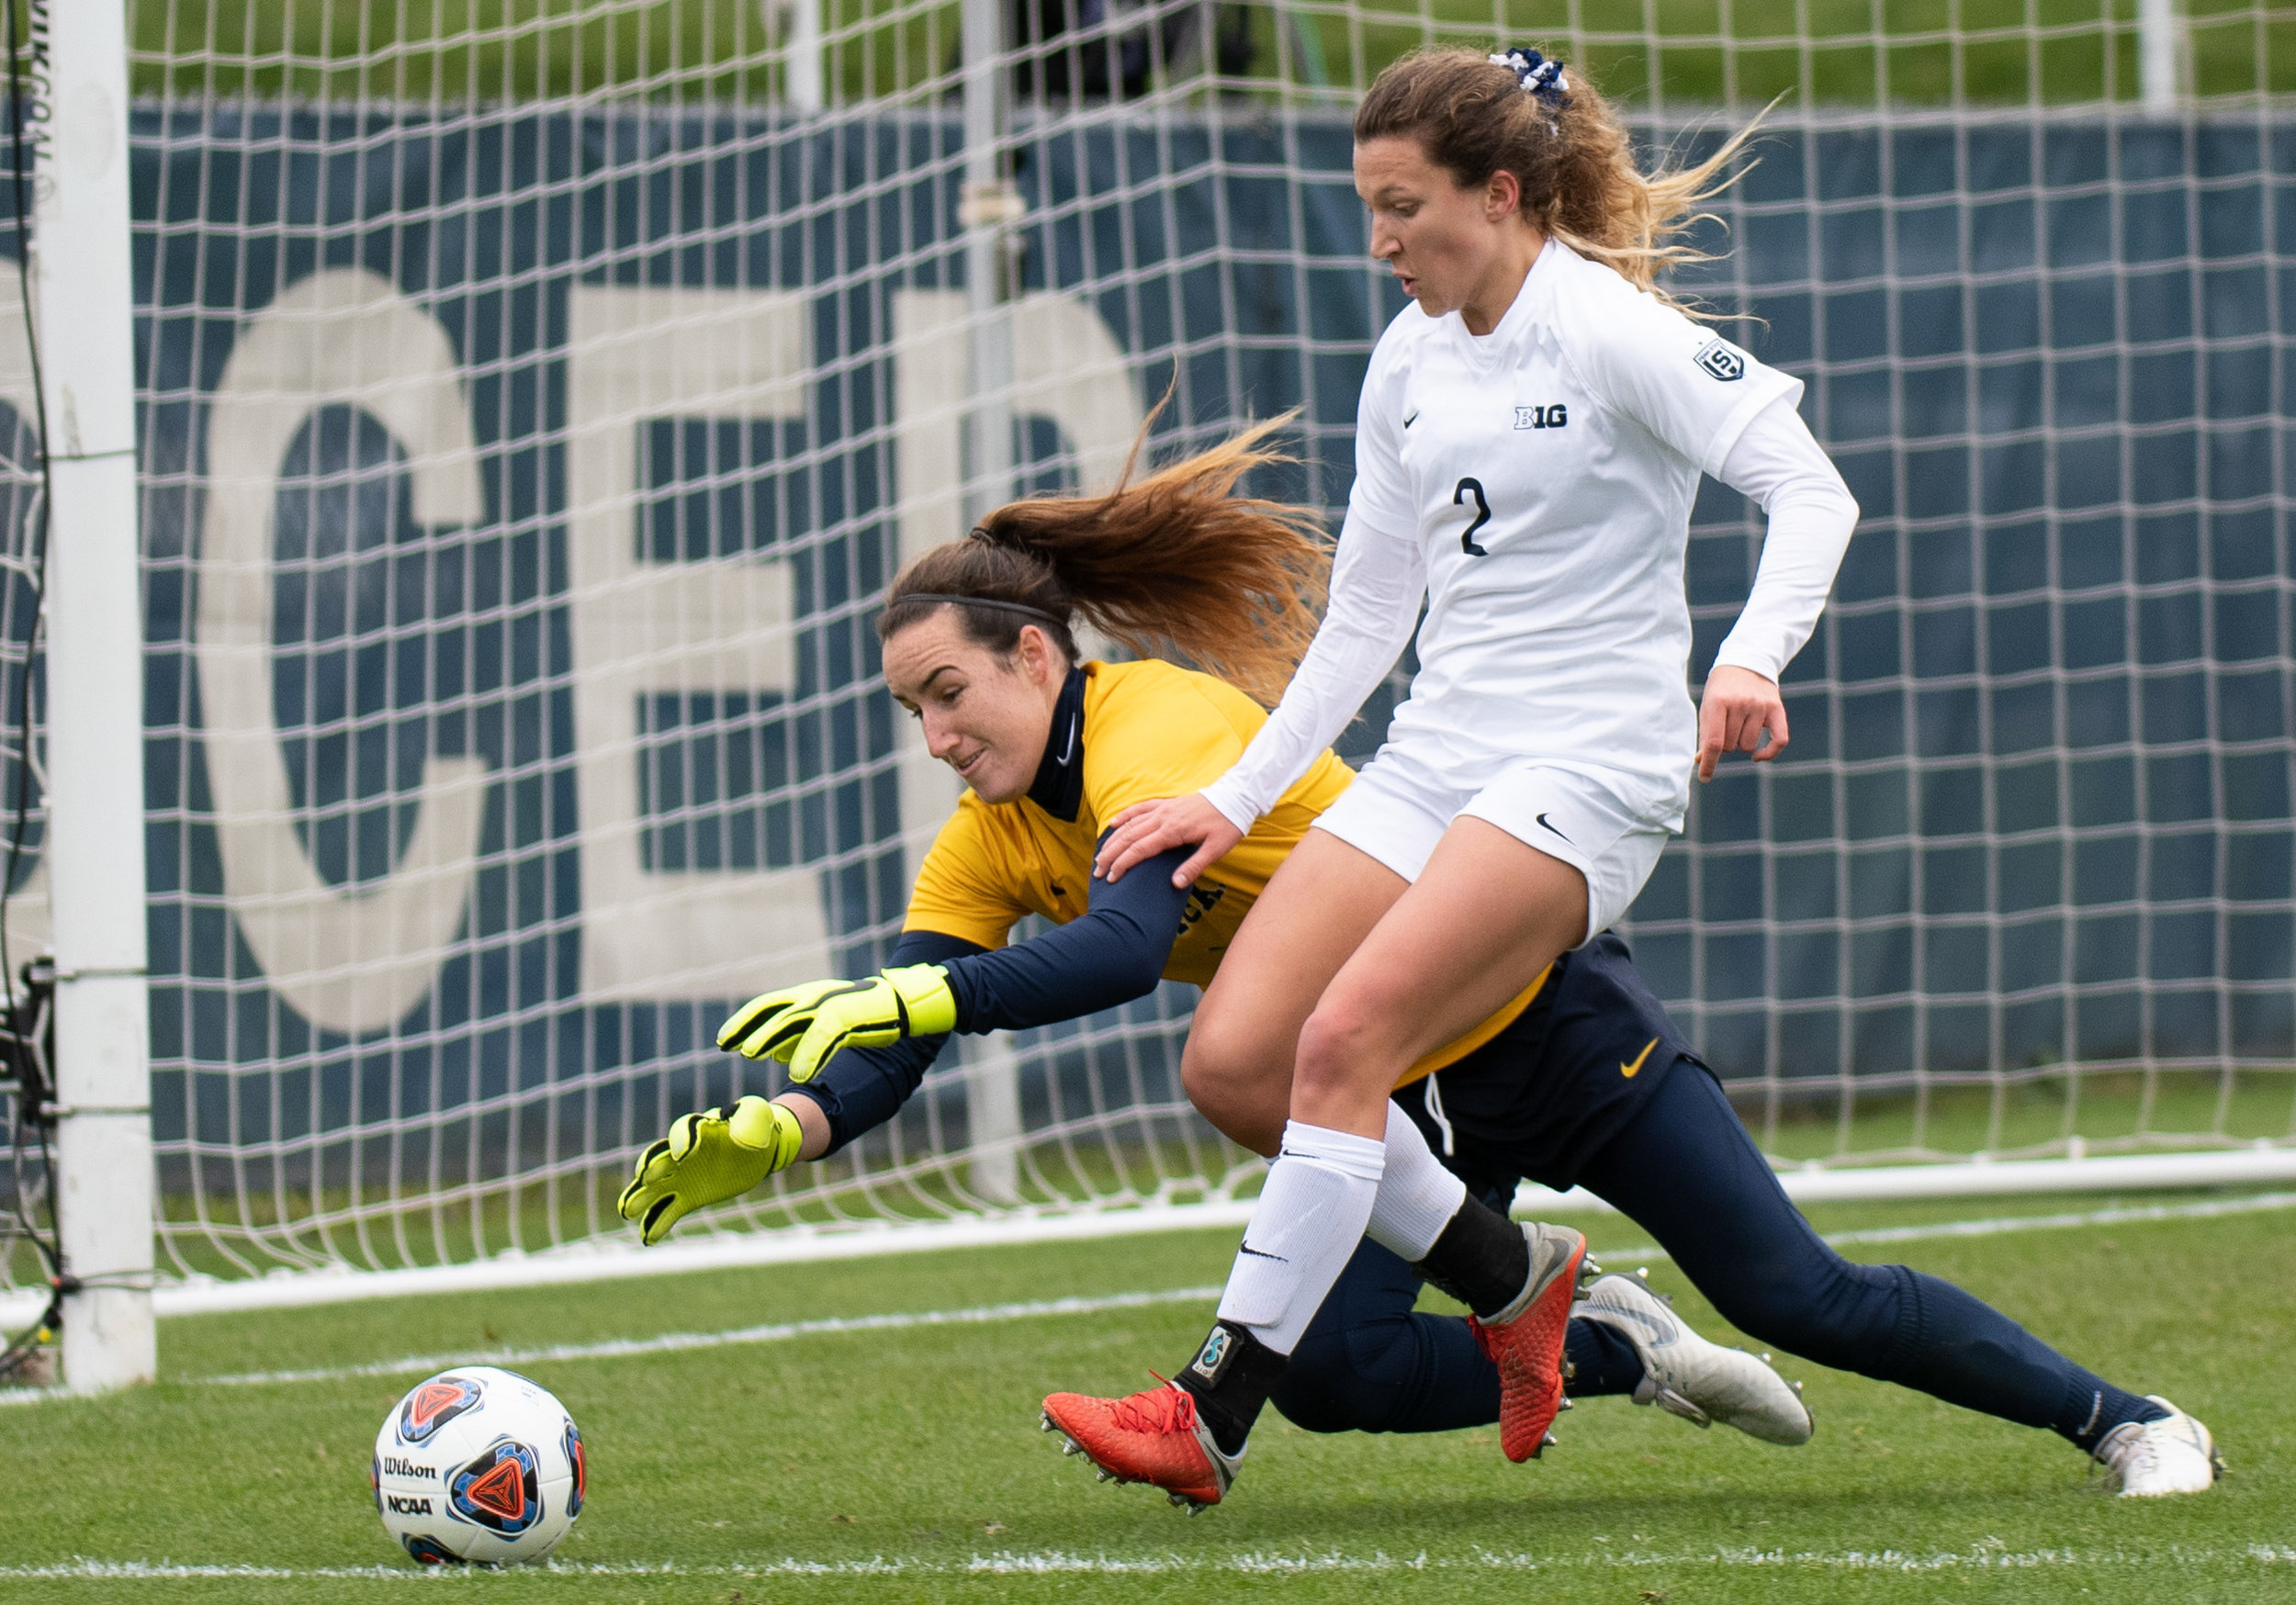 Forward Kerry Abello (2) faces off against the goalkeeper during the Big Ten tournament quarterfinal game against Michigan at Jeffrey Field on Sunday, Oct. 28, 2018. The Nittany Lions defeat Michigan 1-0 and advance to the semifinals of the Big Ten tournament. | Photo by: Noah Riffe